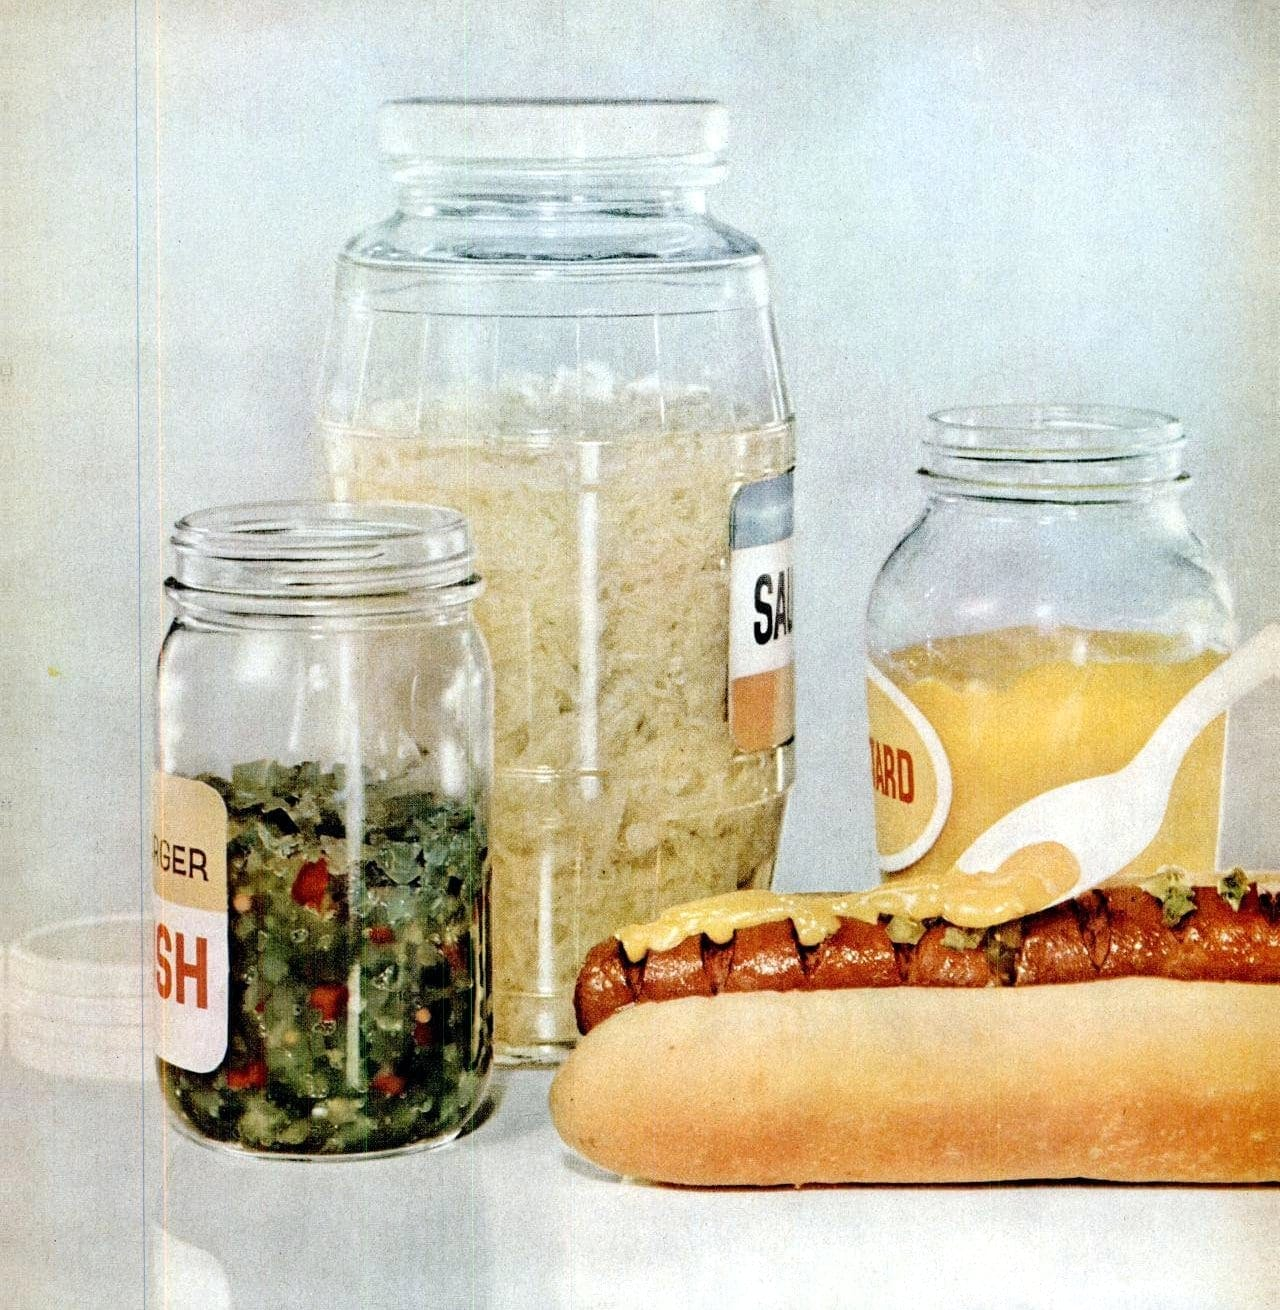 Aug 31, 1959 Hot dogs food